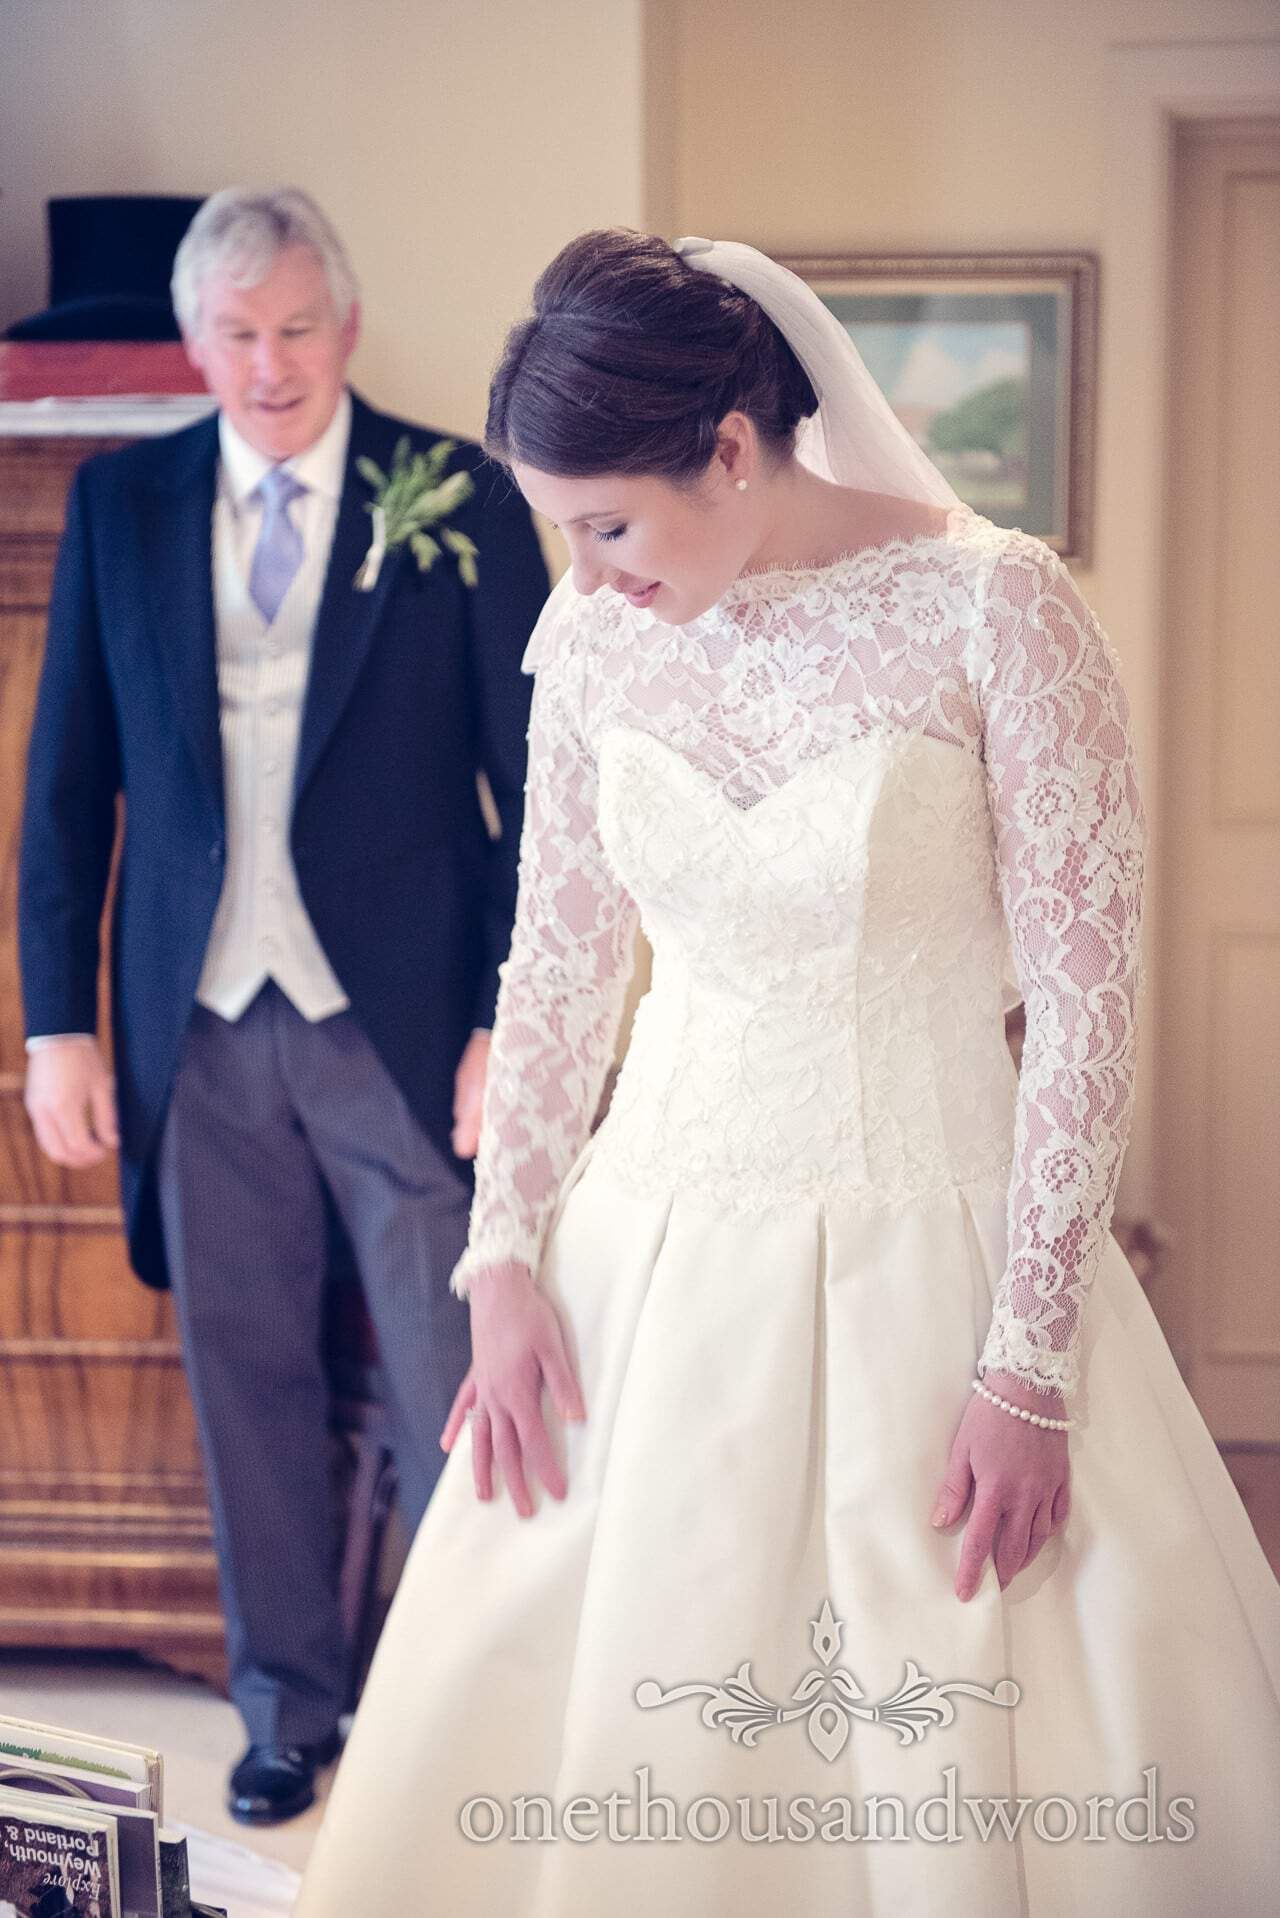 Father of bride looks at bride in white wedding dress on wedding morning